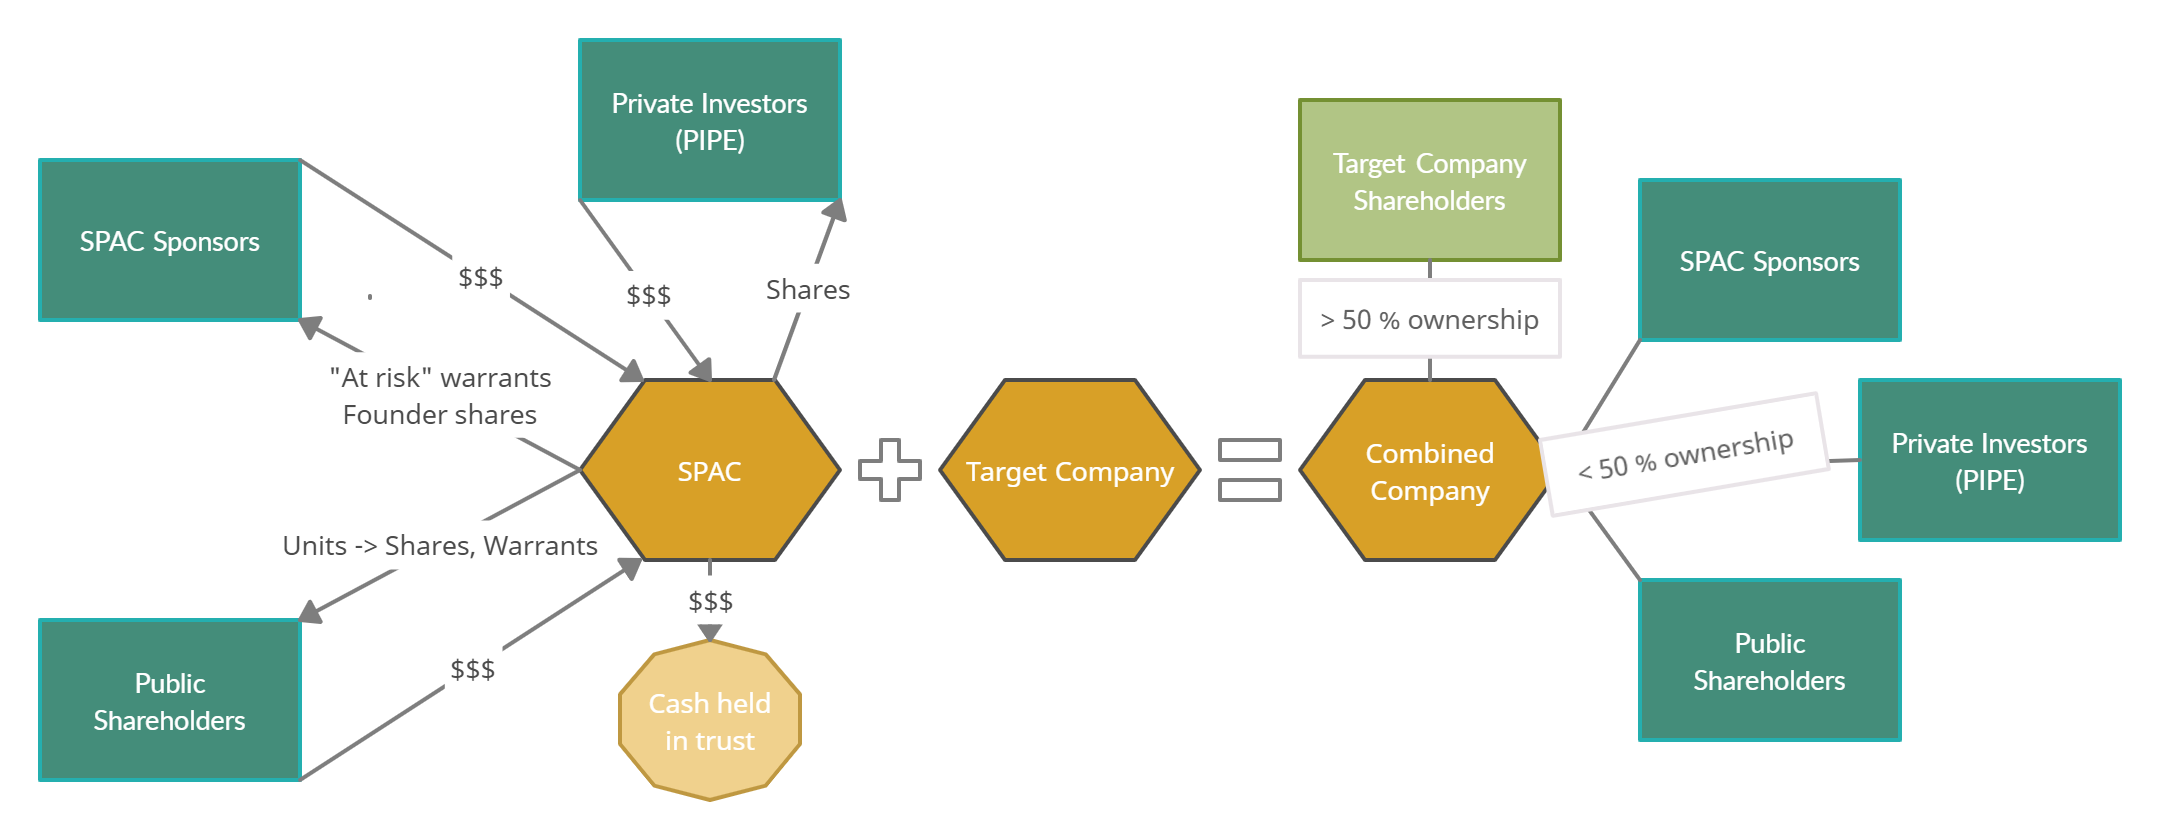 SPAC capital structure chart